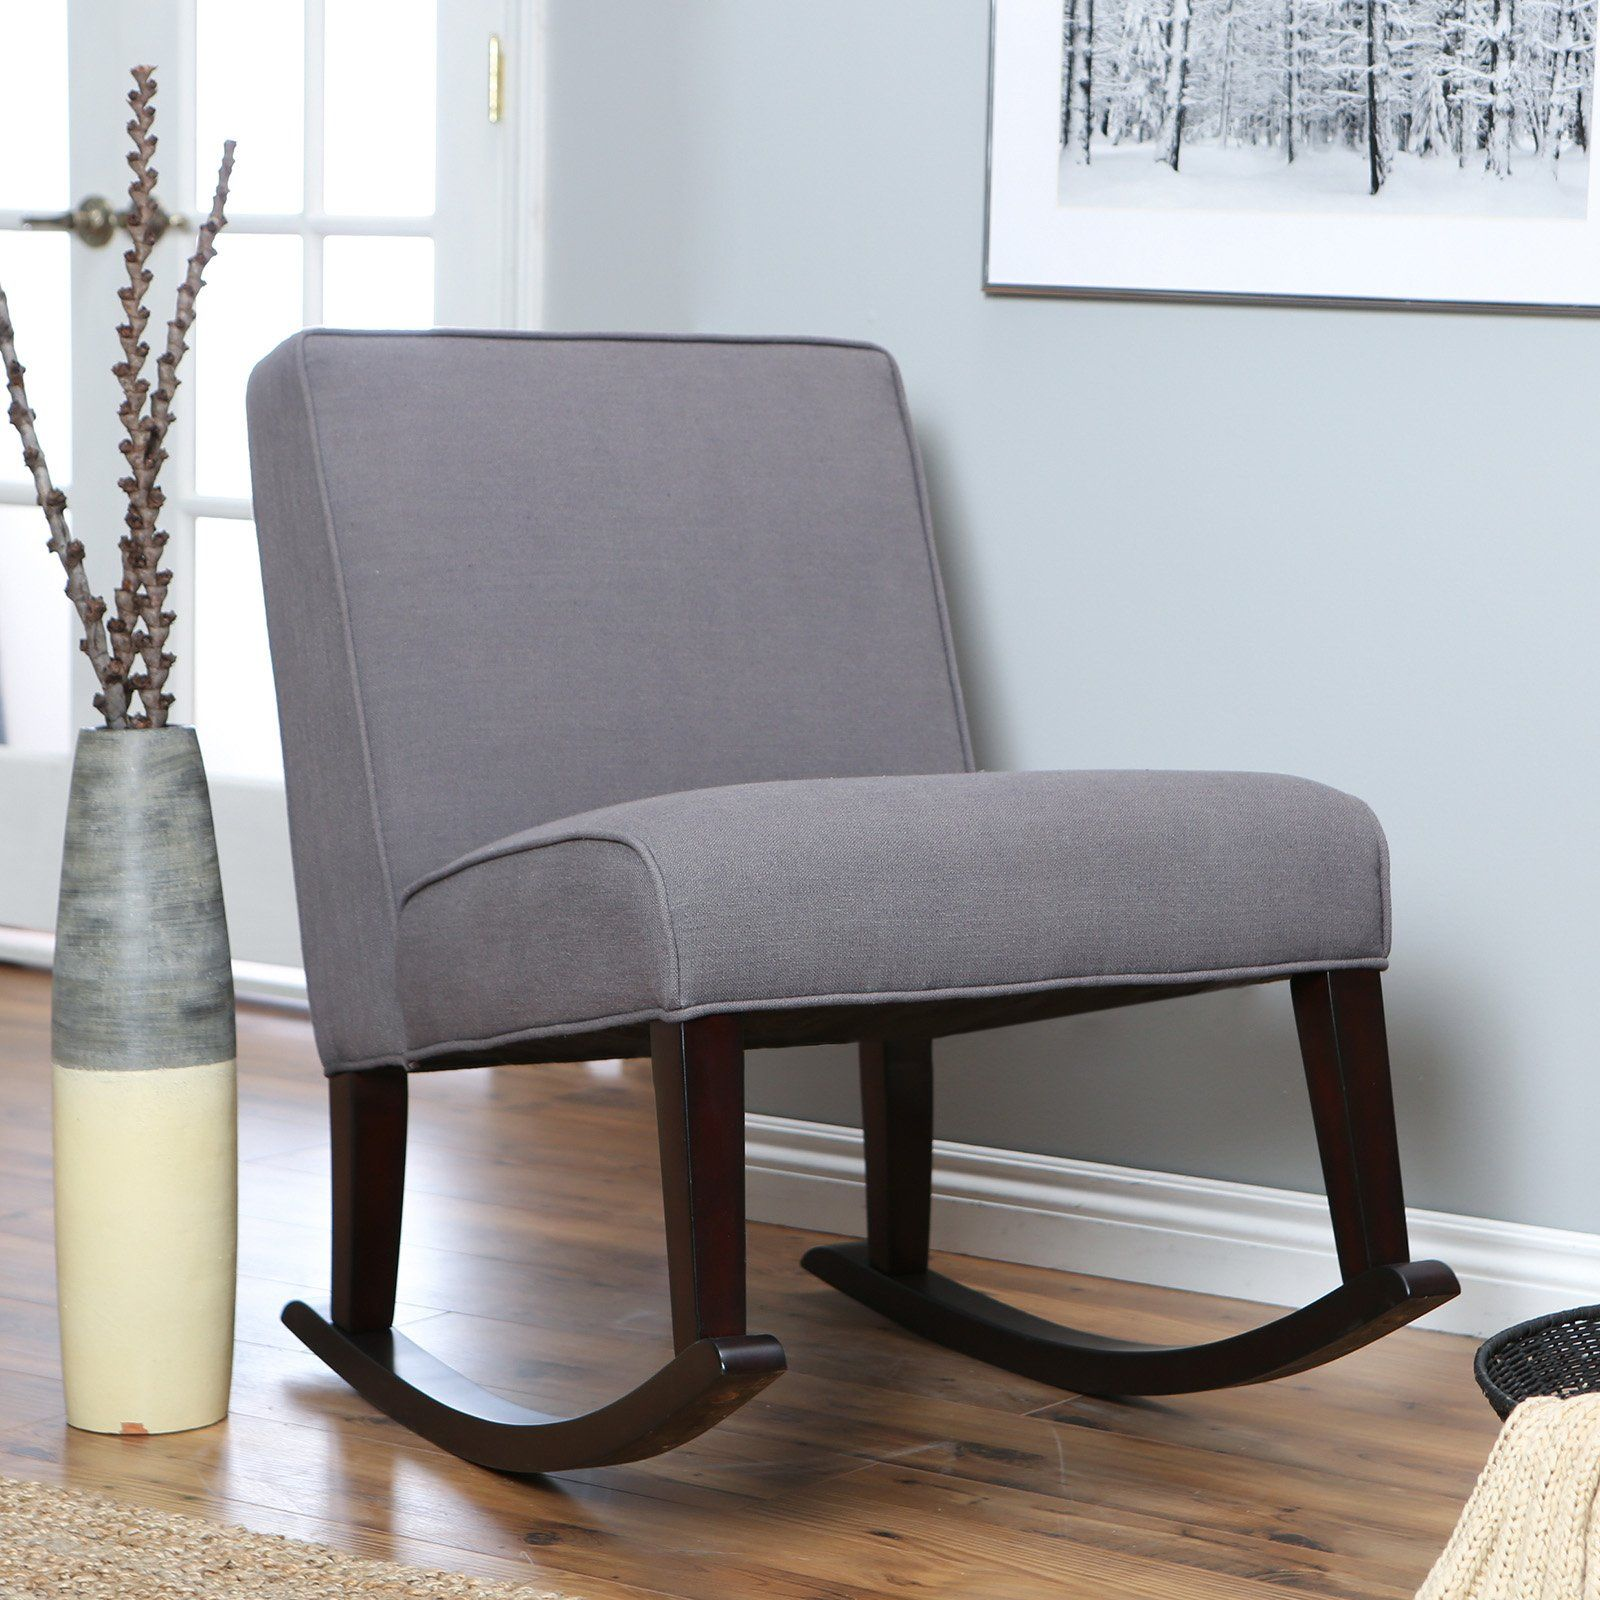 Affordable Rocking Chairs Frontgate Pool Lounge Have To It Belham Living Lennox Chair 219